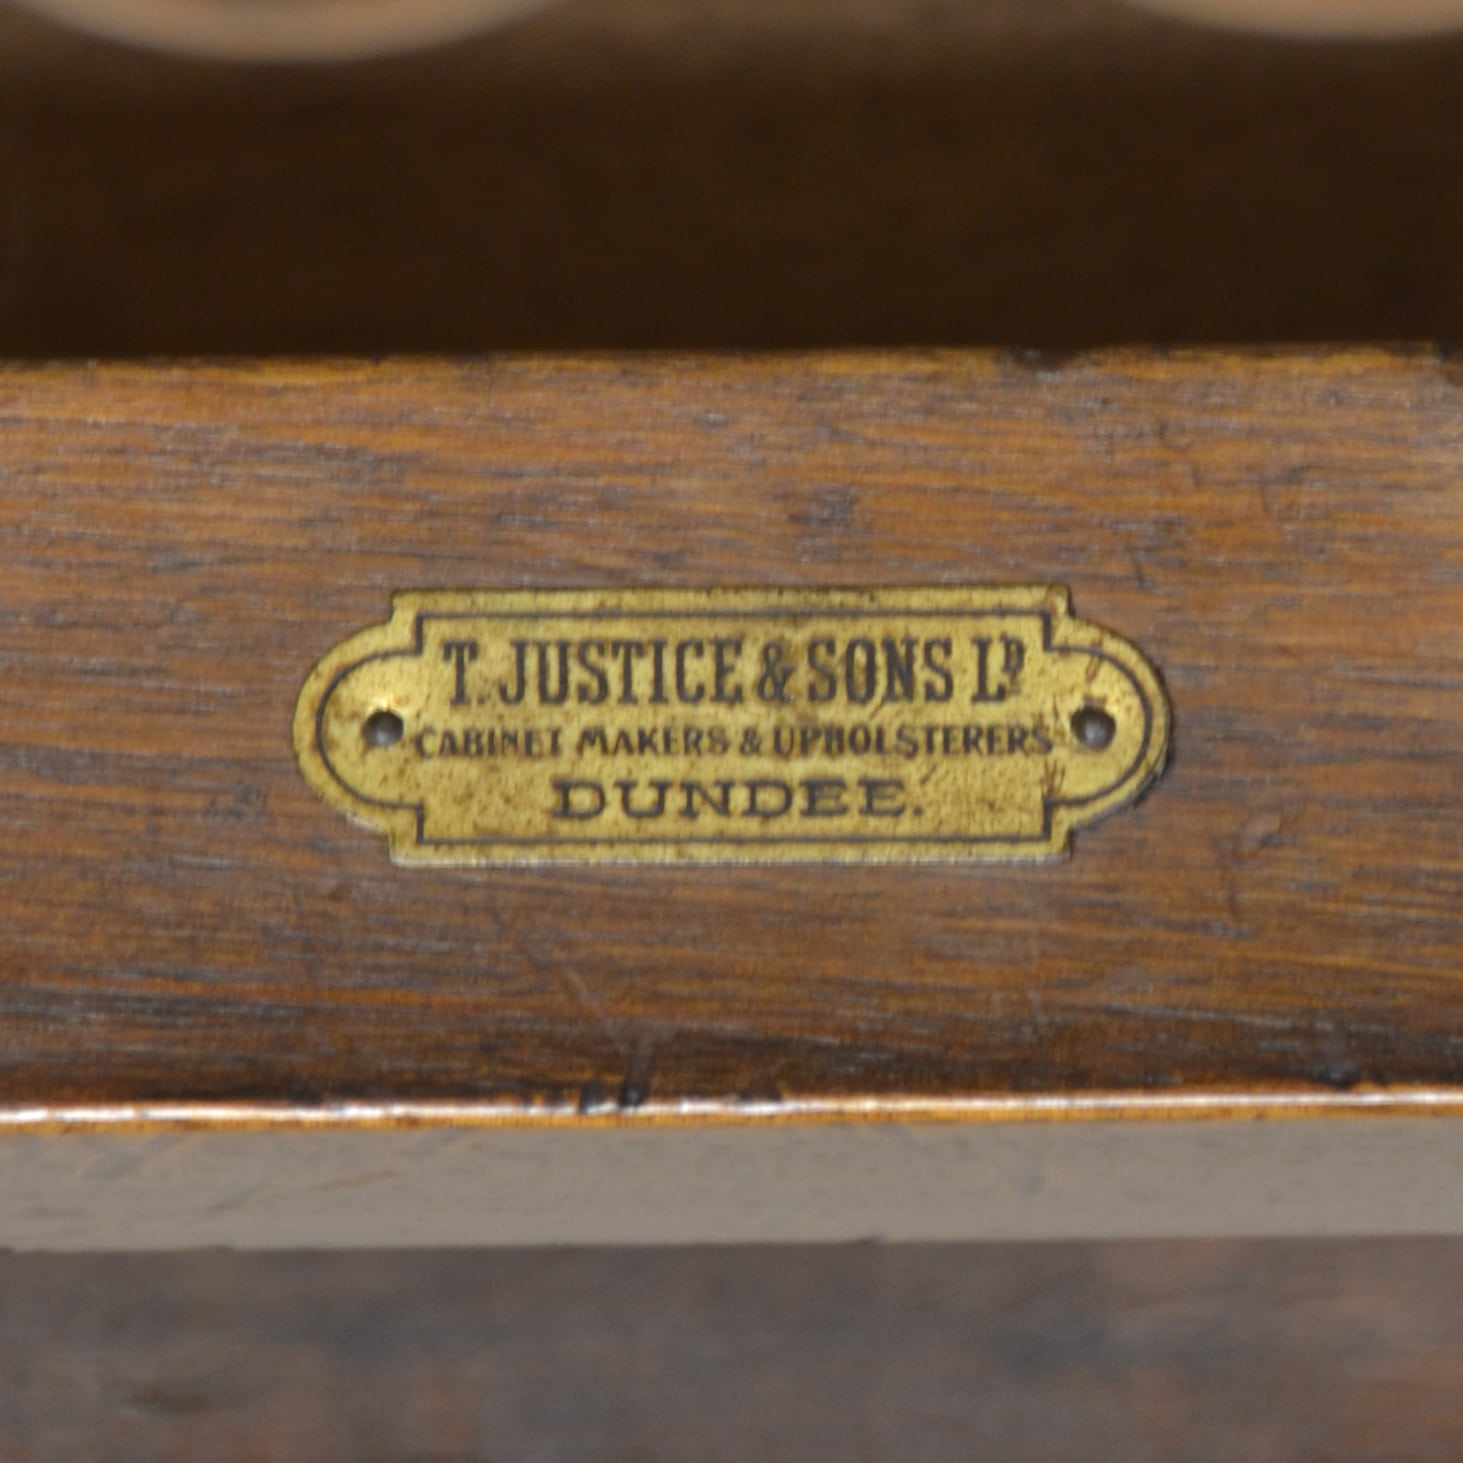 T. Justice and Sons of Dundee